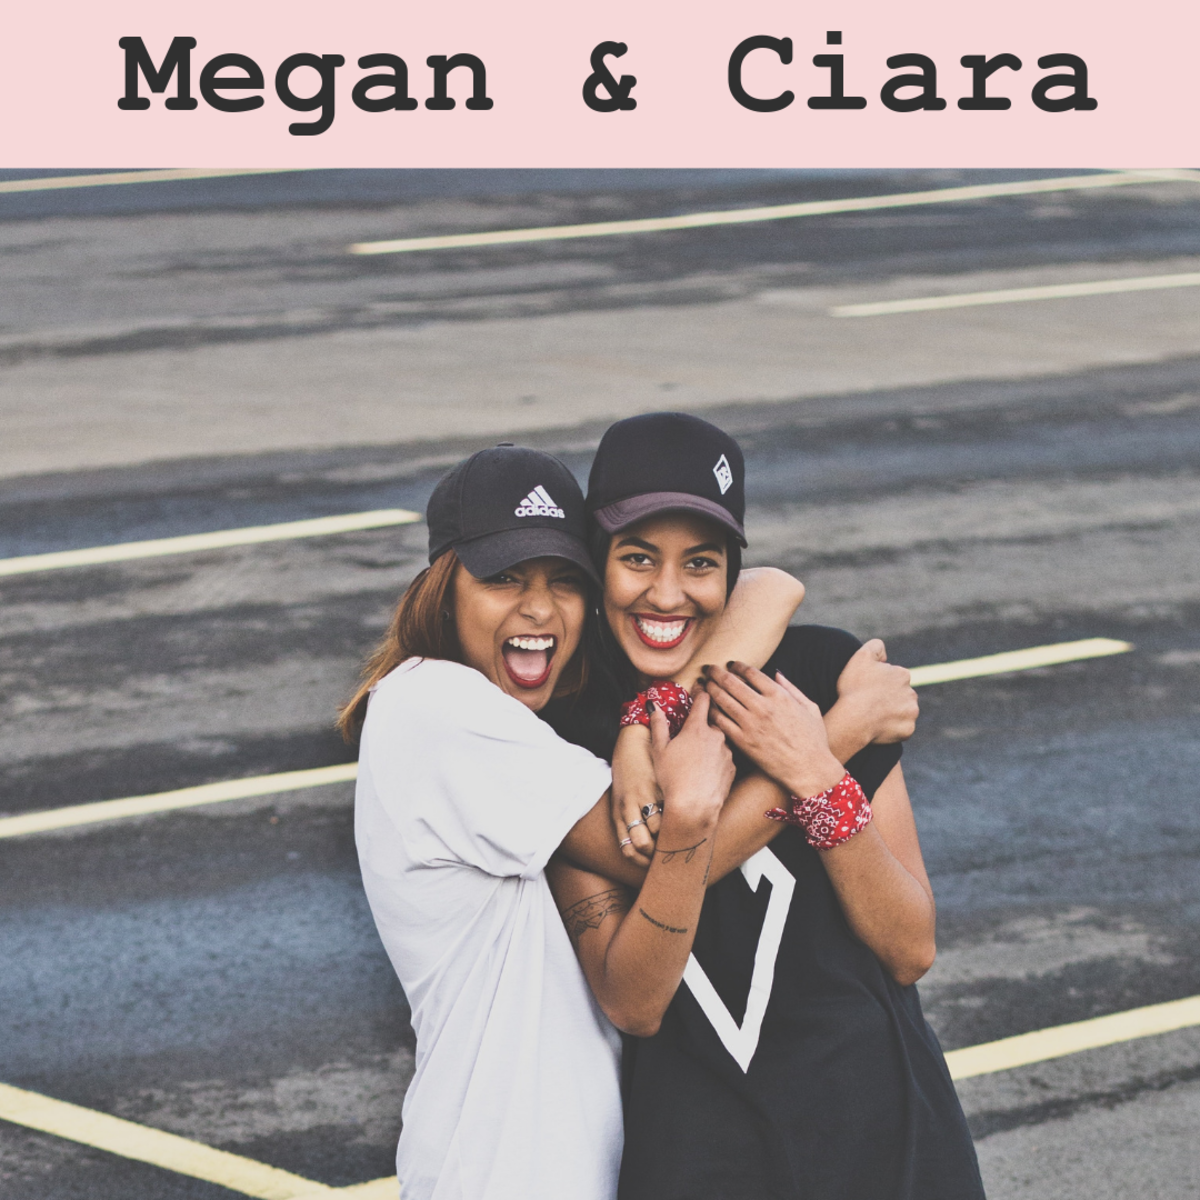 Megan and Ciara